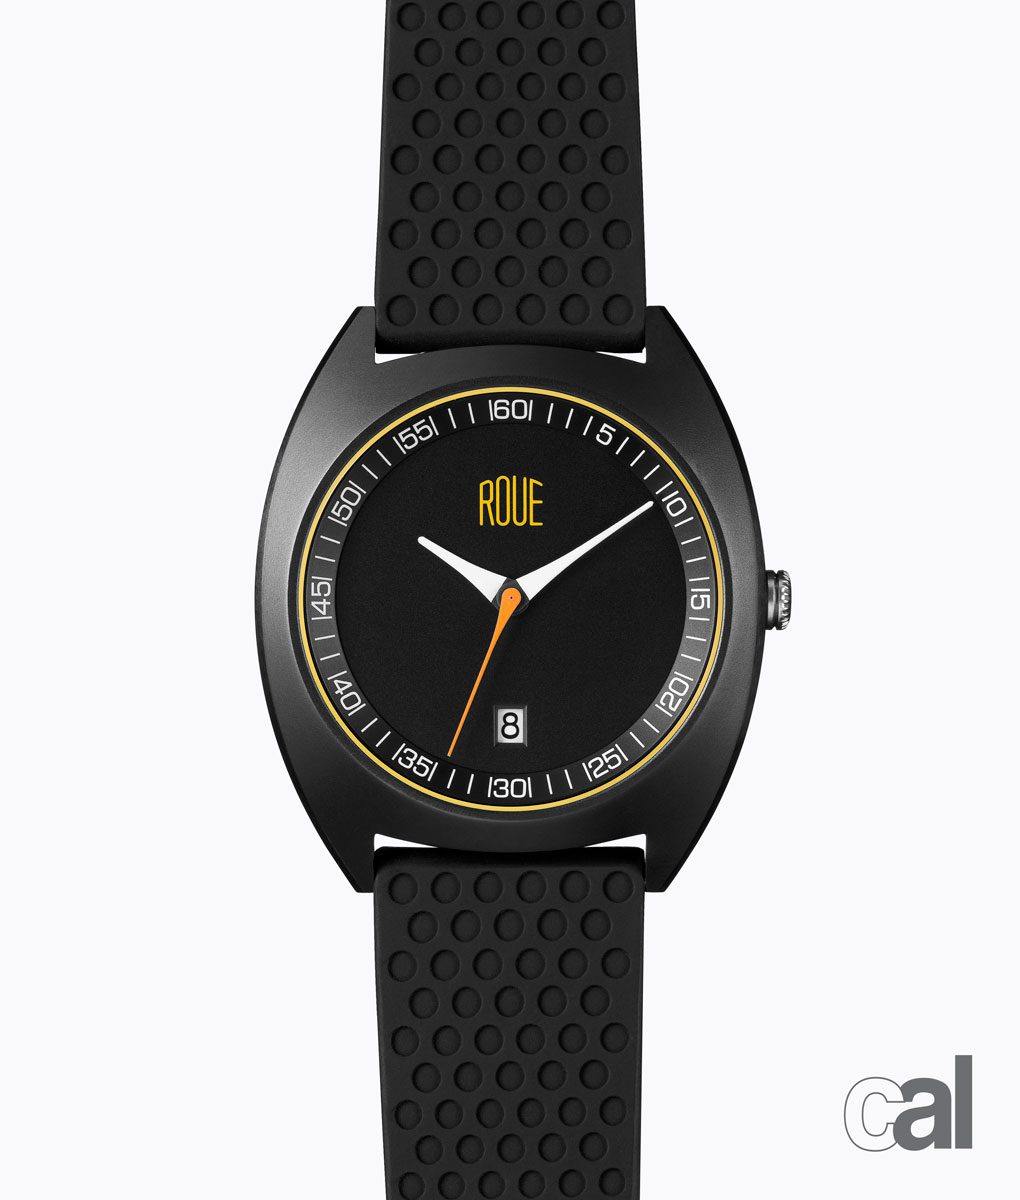 Roue minimalistic HDS one watch review CHR One